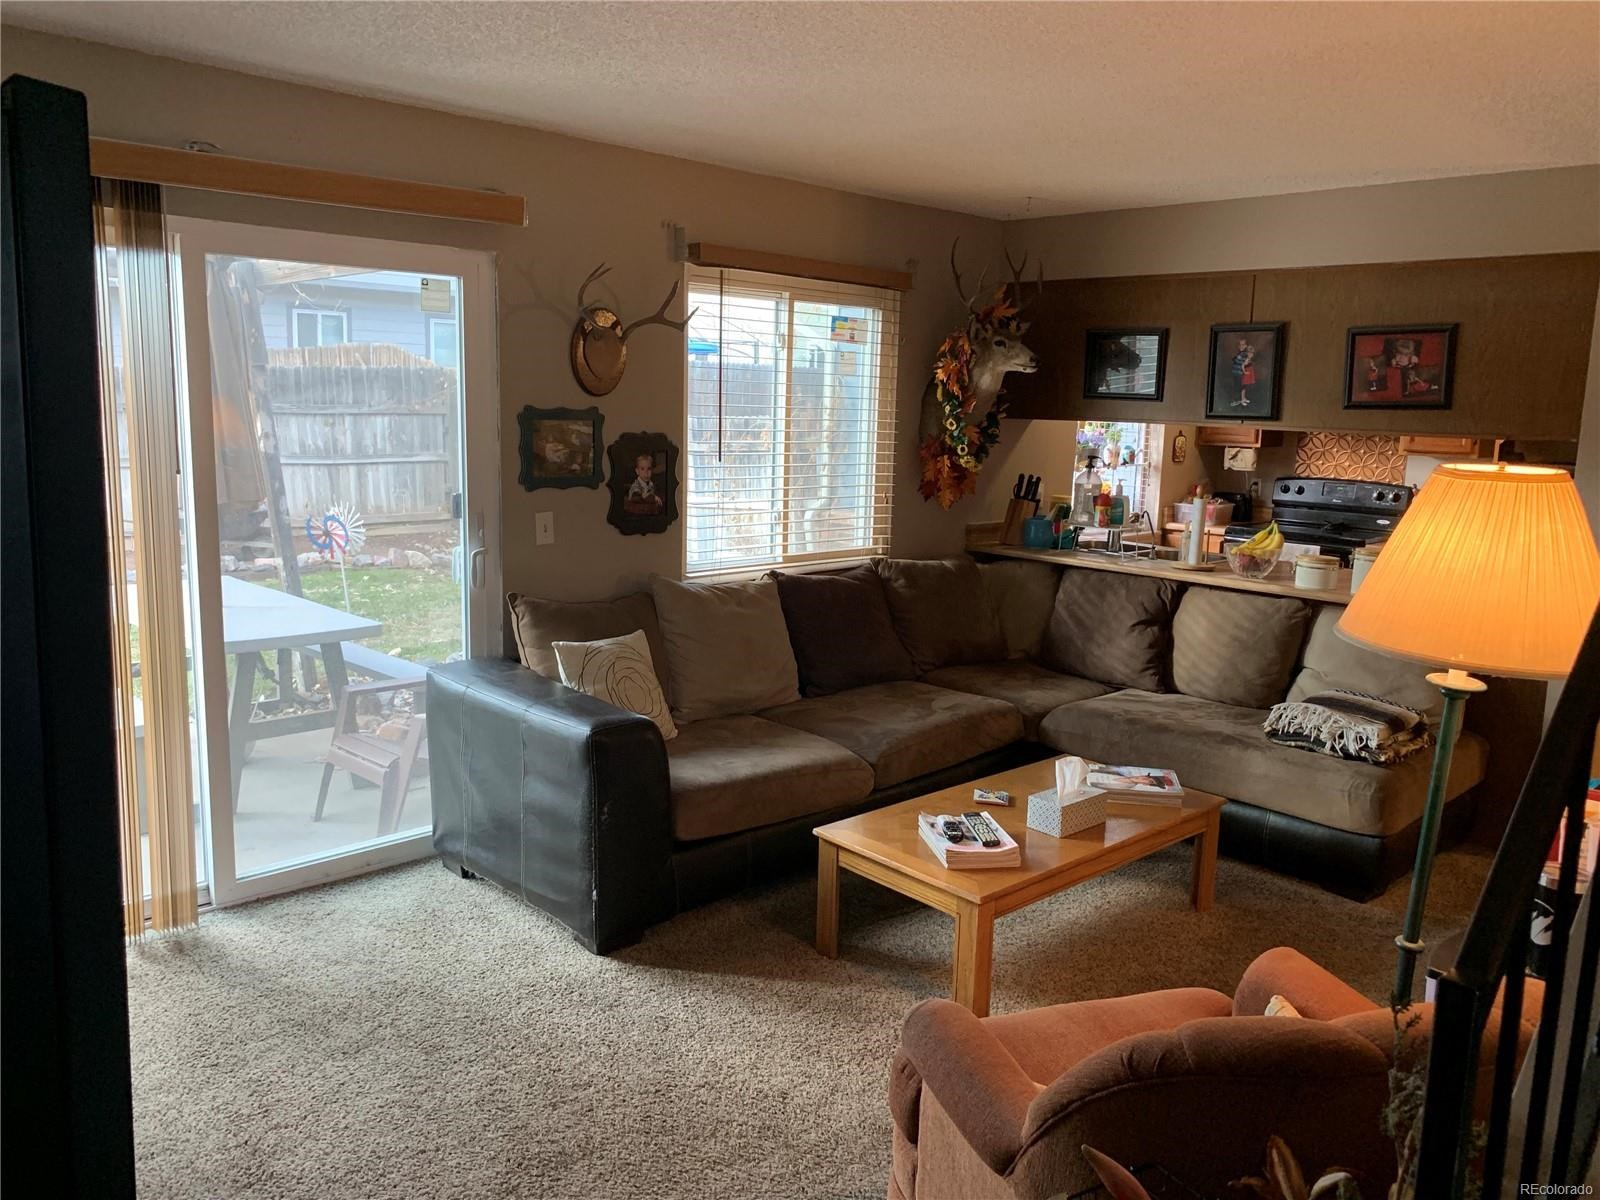 MLS# 7397939 - 5 - 12549 Forest Drive, Thornton, CO 80241